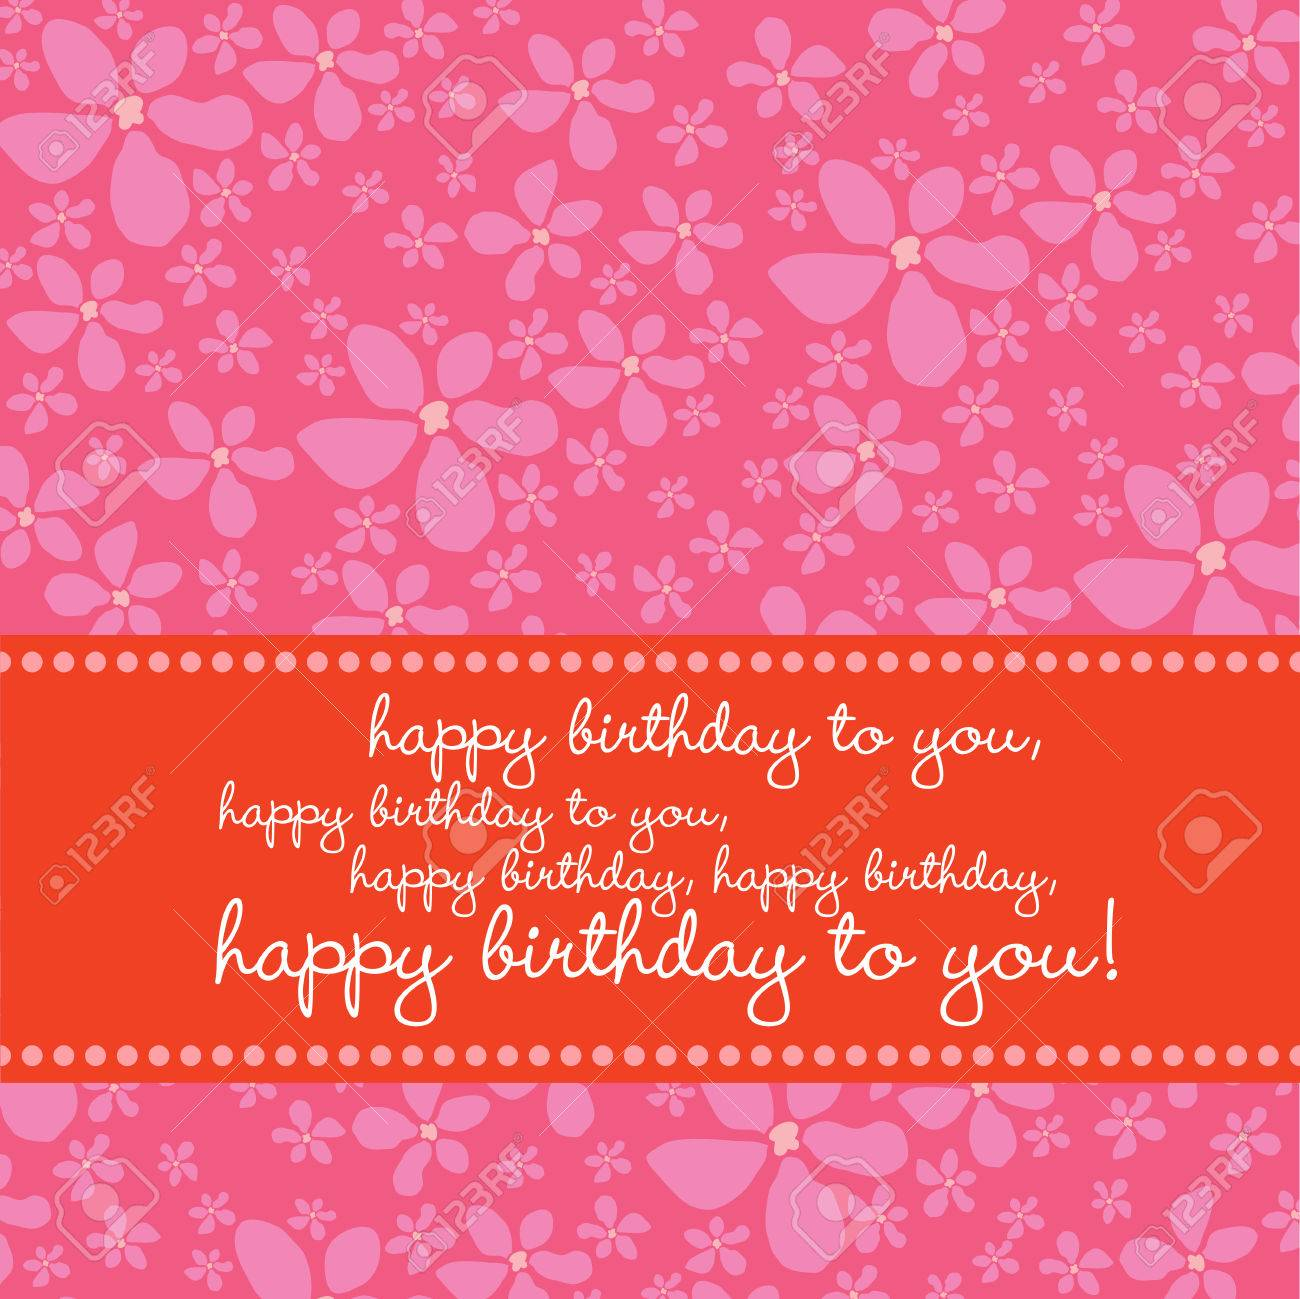 Bright colored birthday greeting card with retro flower pattern in pink, red, white. Stock Vector - 3459250